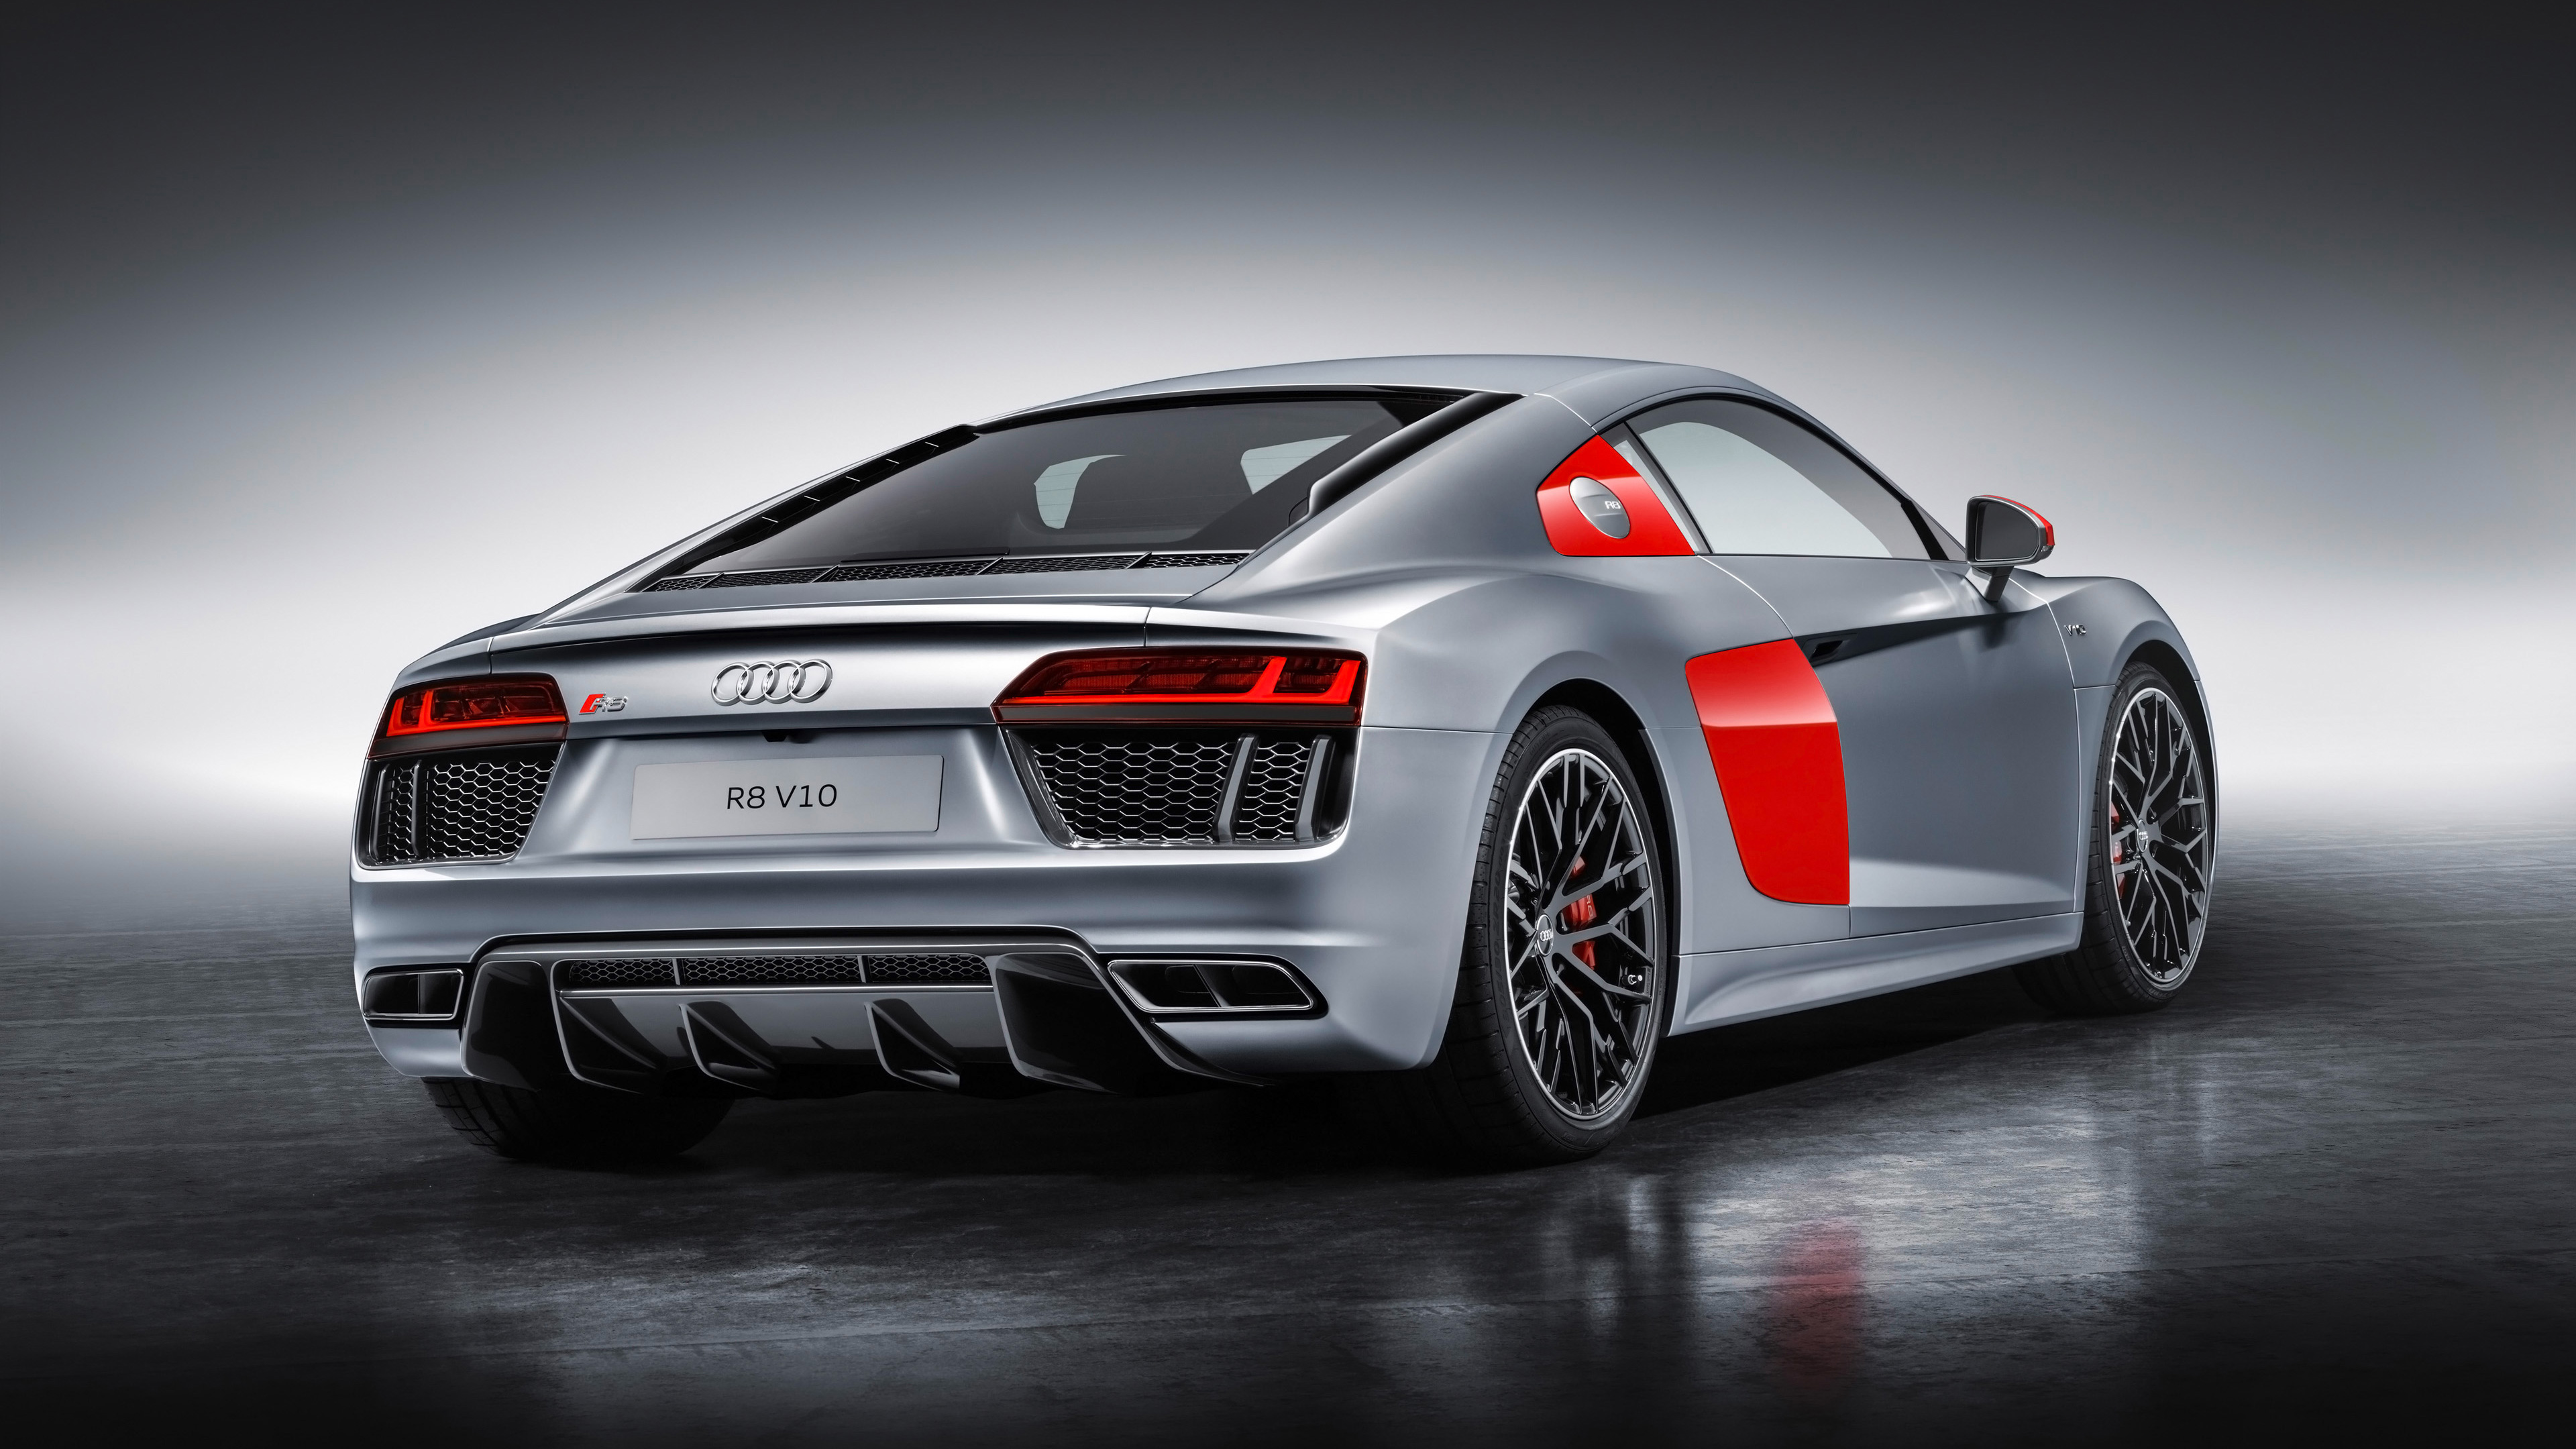 2018 Audi R8 Coupe Sport Edition 2 Wallpaper Hd Car Wallpapers Id 8164